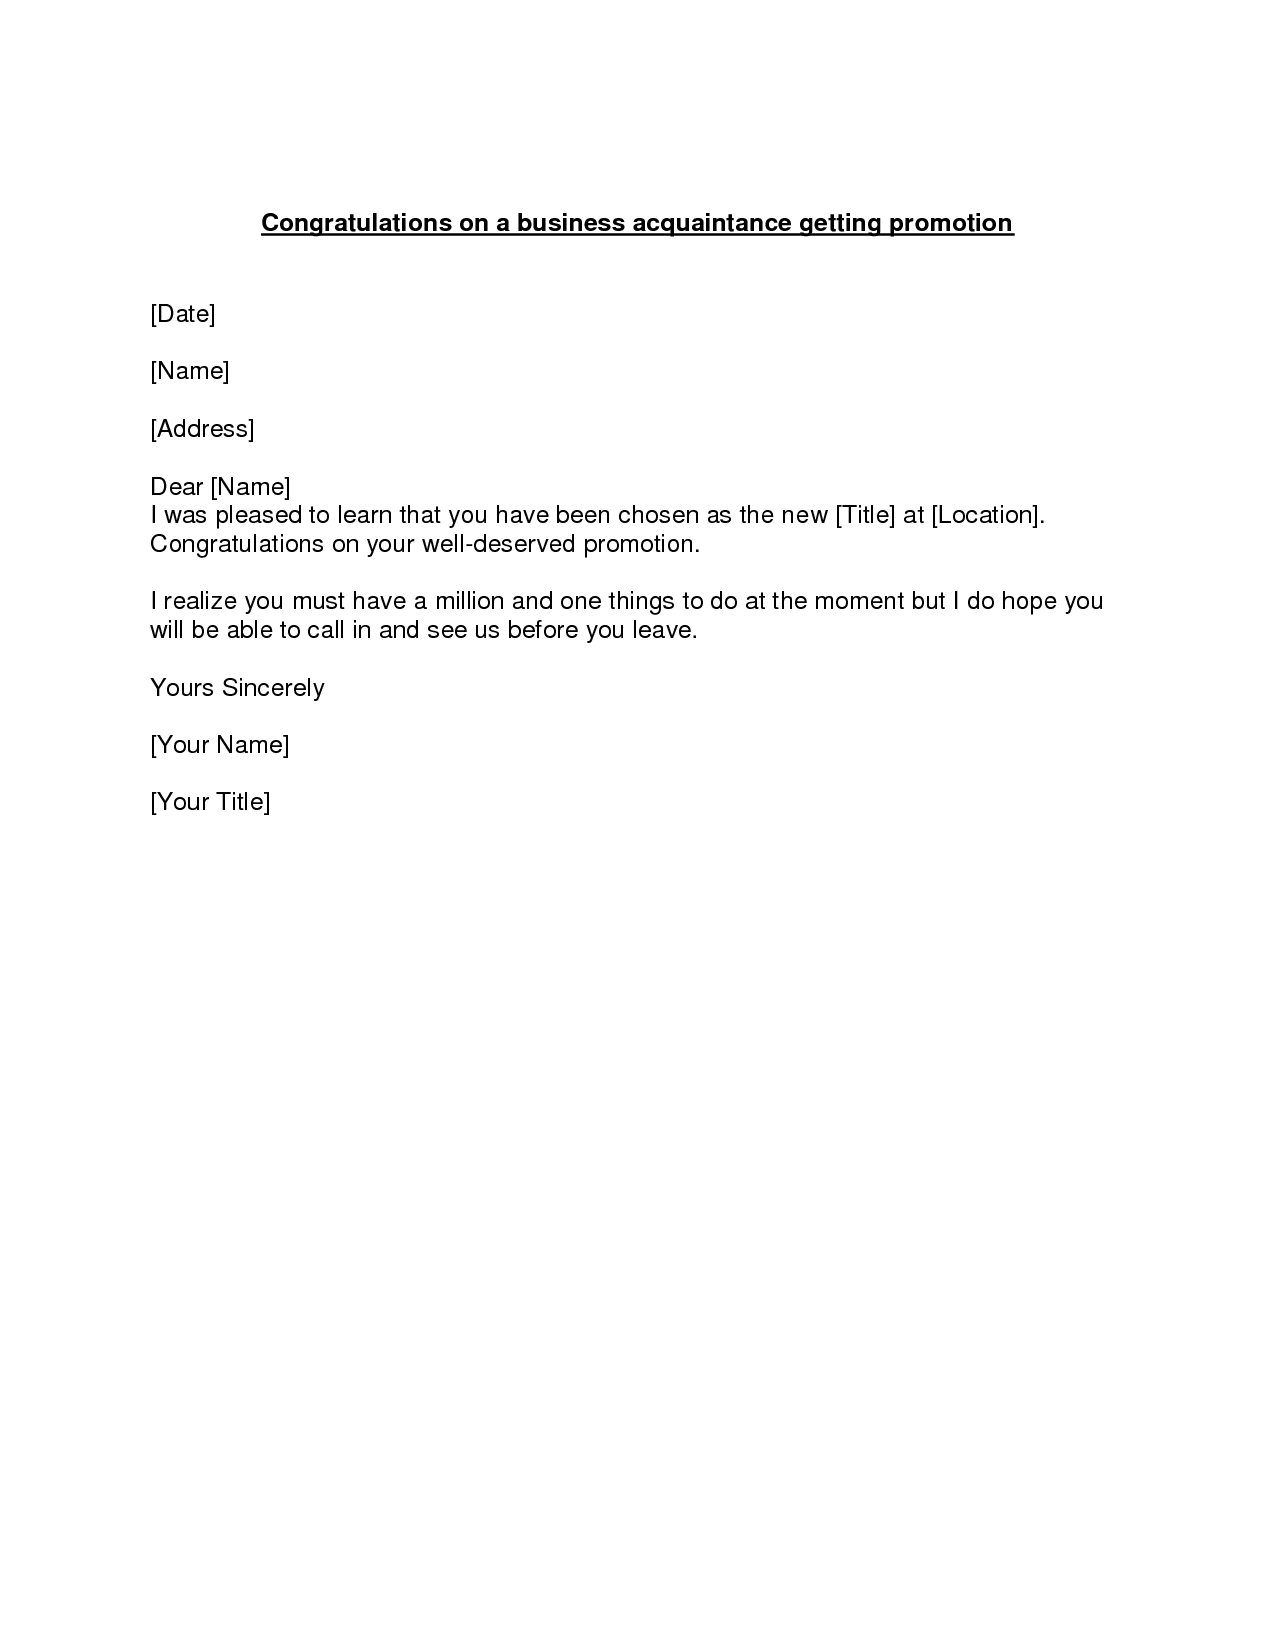 Congratulatory letter on promotion charlotte clergy coalition job promotion letter sample elegant congratulatory letter for job altavistaventures Image collections